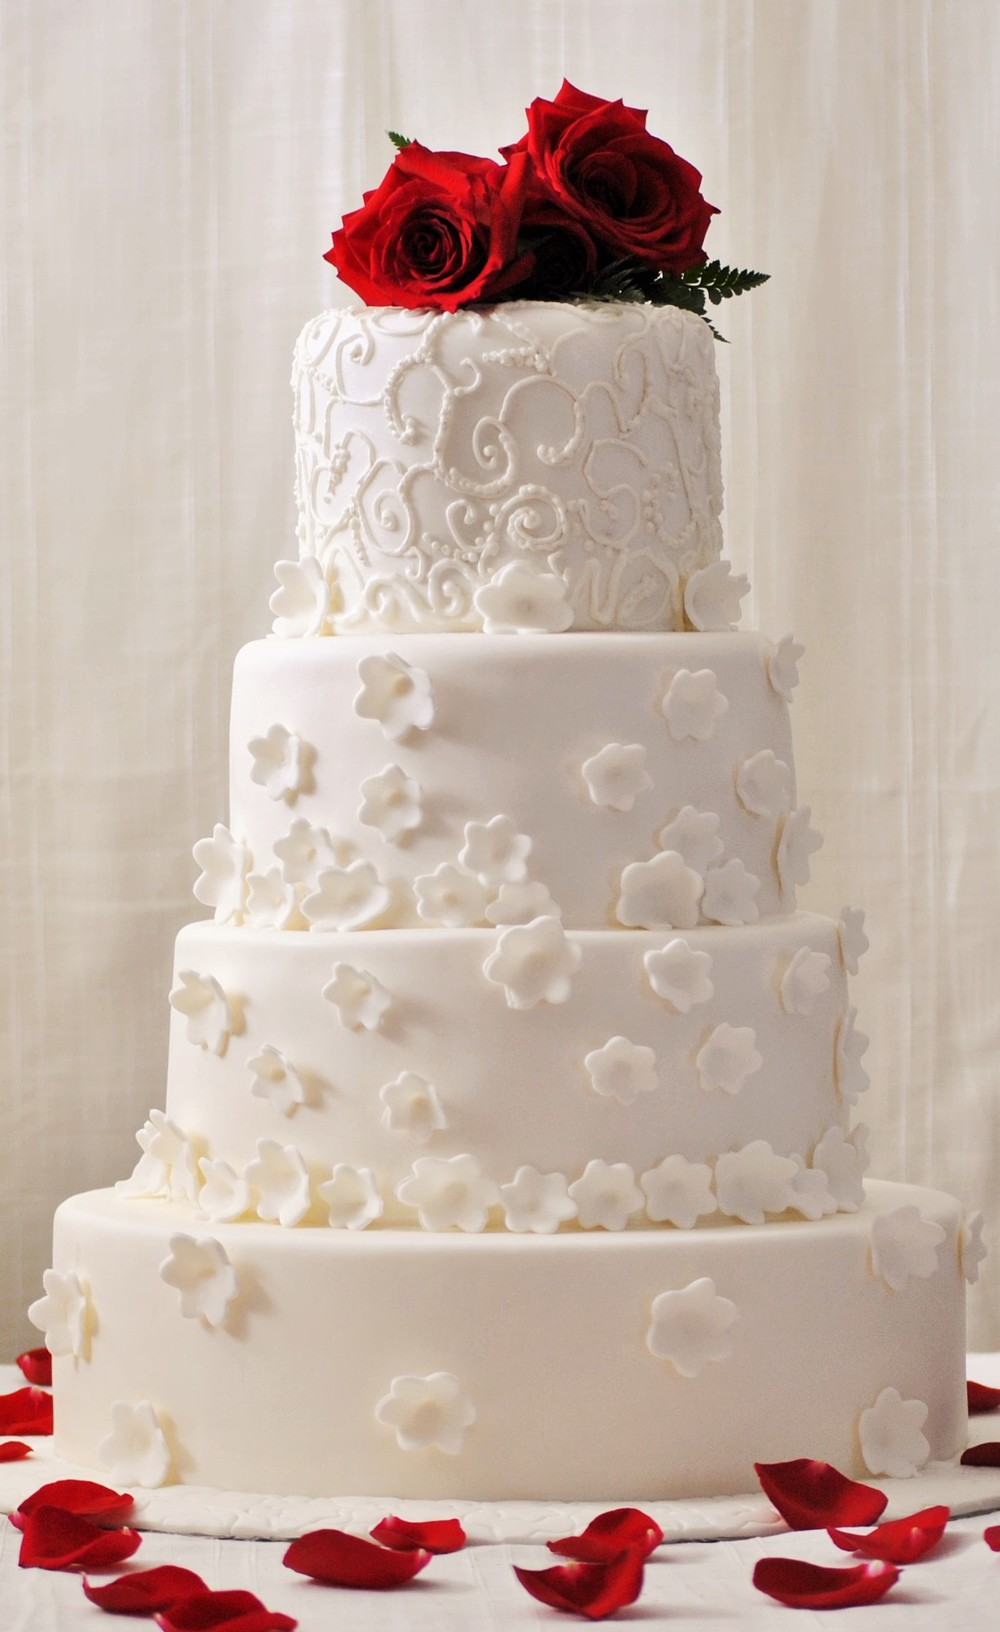 rosie 39 s gourmet cakes weddings special events